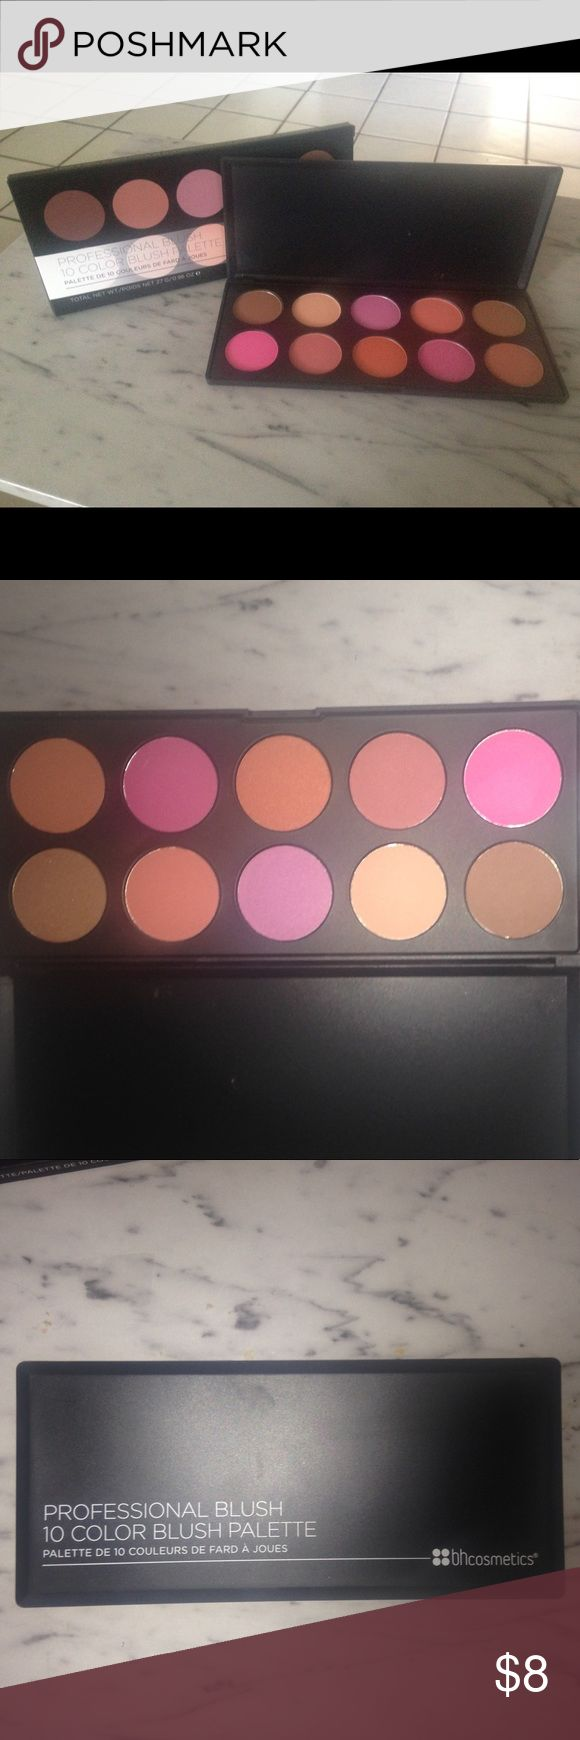 BH Cosmetics 10 Colour Glamorous Blush Palette Ordered these directly from BH Cosmetics online but wow! These are a little too bright for me. Brand new w/box - not even swatched. Ended up w/a Tarte blush palette I am gaga over!  Price firm BH Cosmetics Makeup Blush